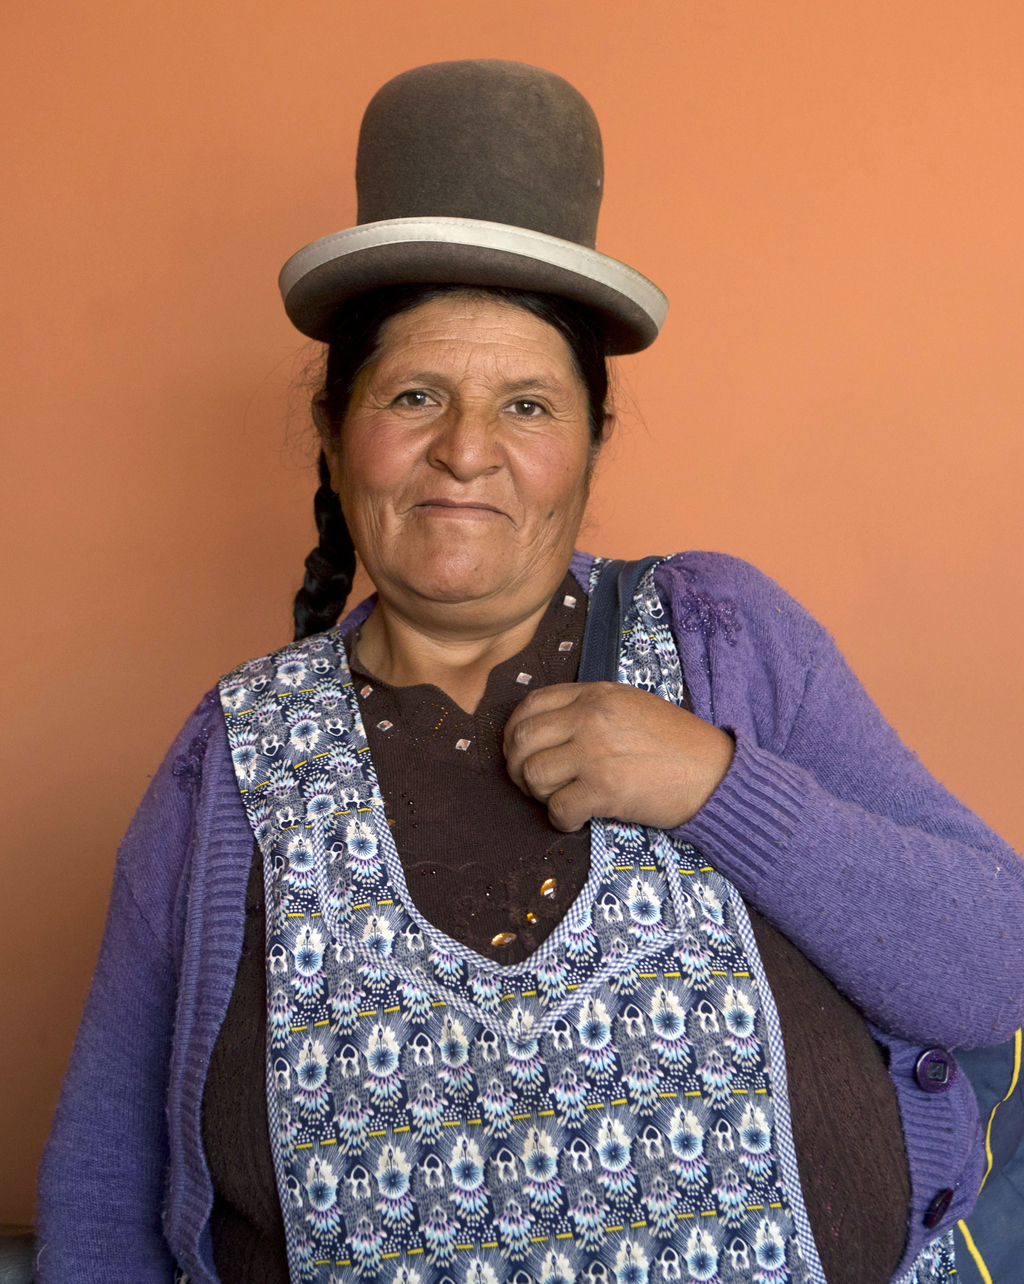 In this May 15, 2017 photo, midwife Daniela Vilca, 53, poses for a portrait at the Nila Heredia hospital in Patacamaya, Bolivia. The government's midw...